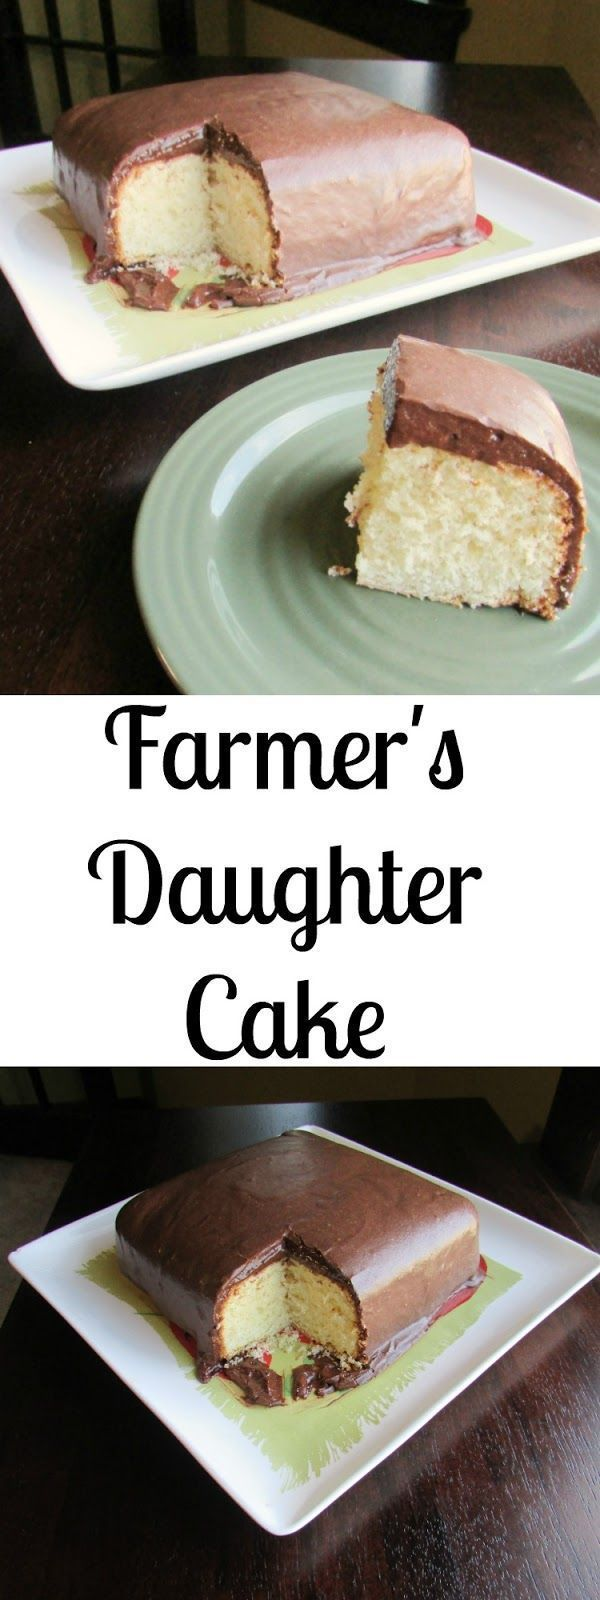 This Farmer's Daughter Cake is a delicious vanilla cake with a delectable chocolate frosting!